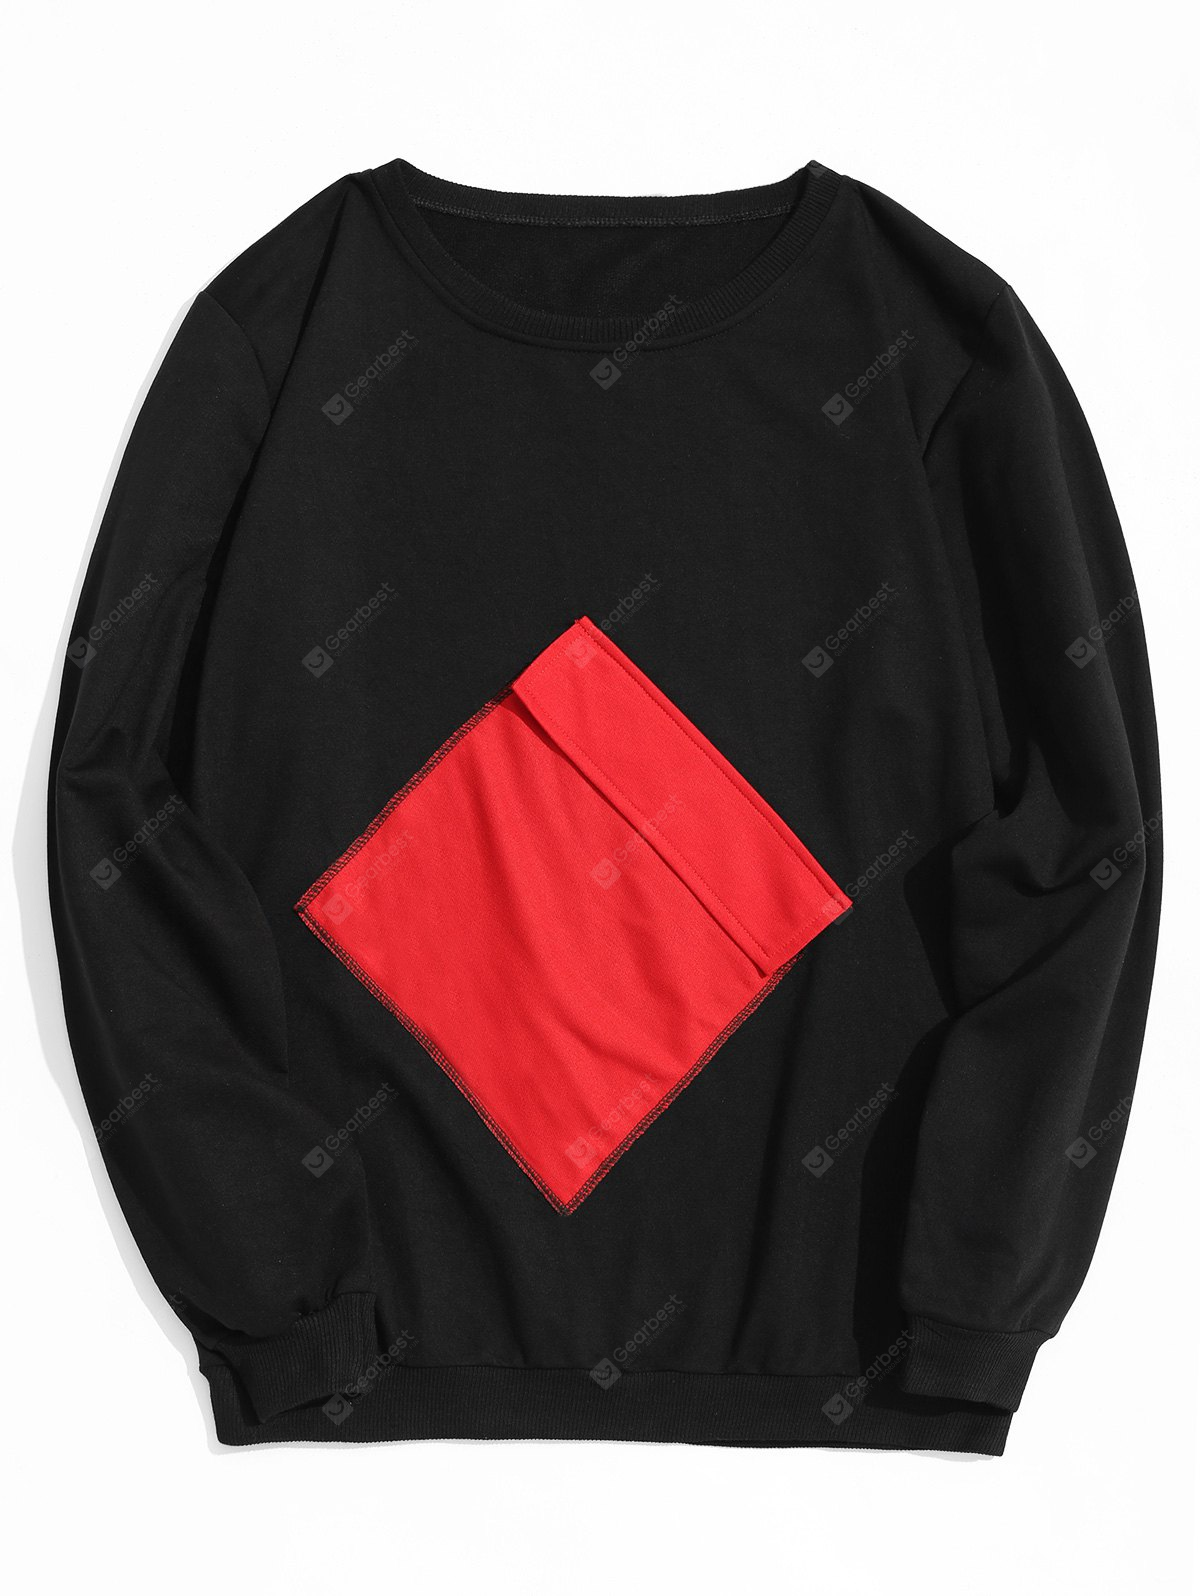 Crew Neck Flap Pocket Sweatshirt